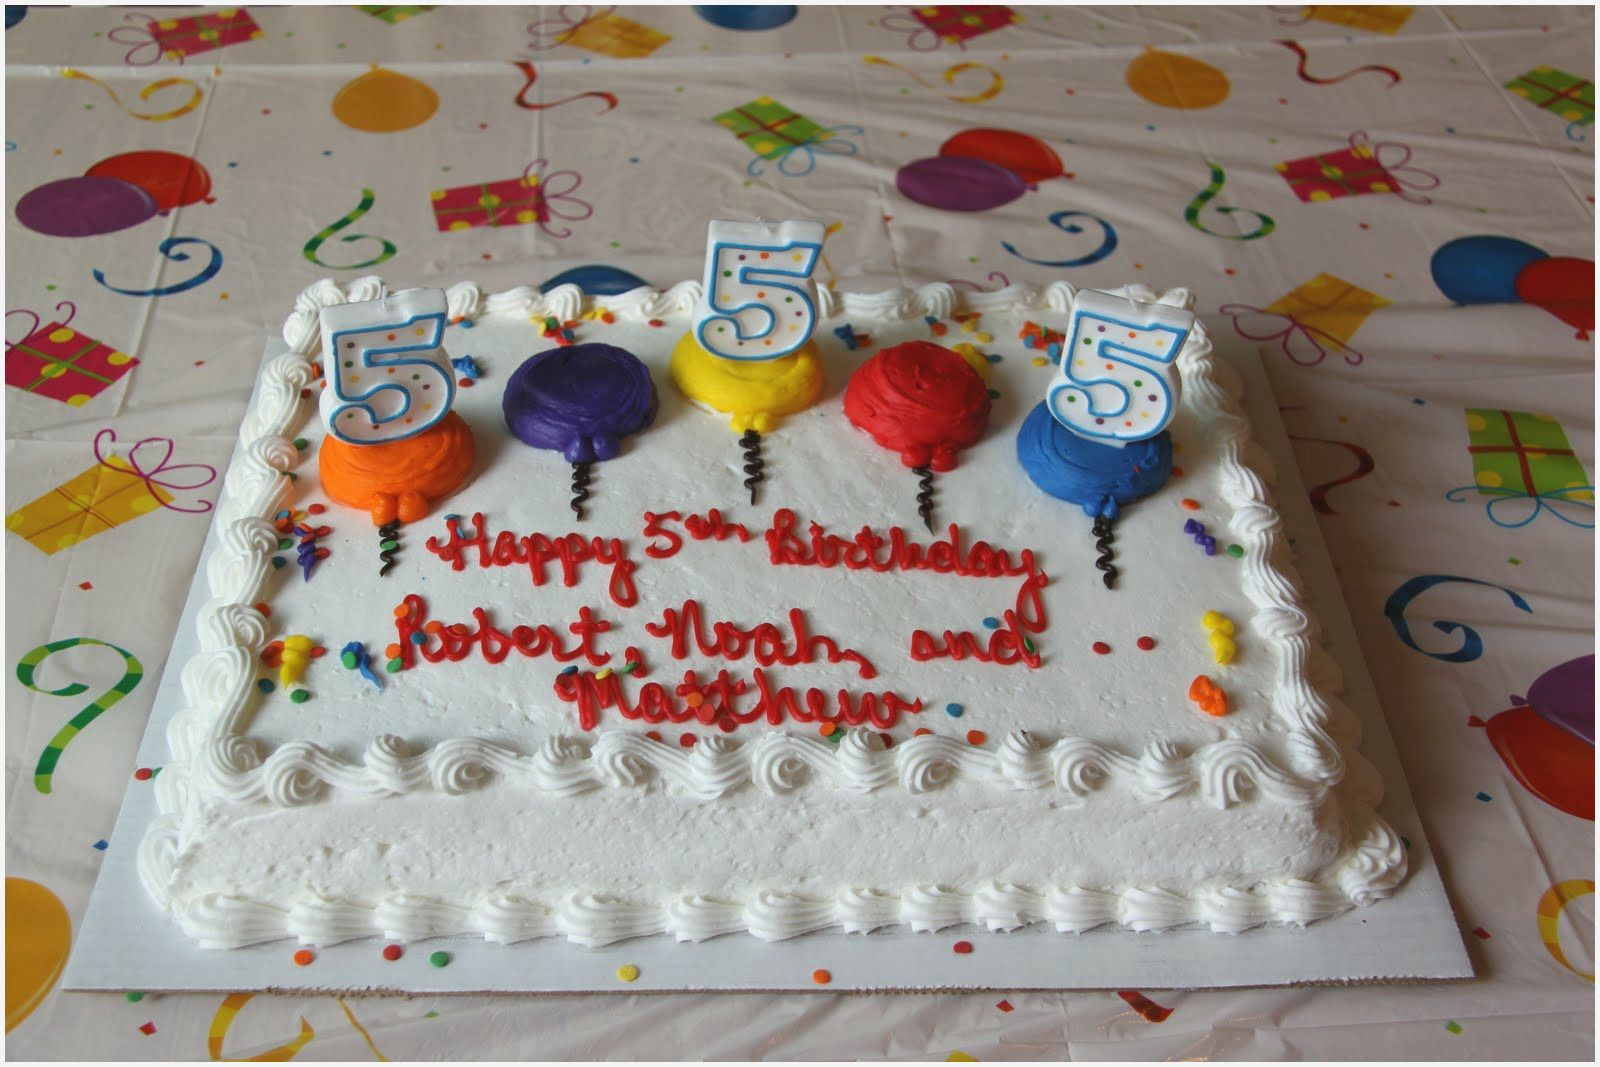 51 New order Cake From Costco Images Check more at https